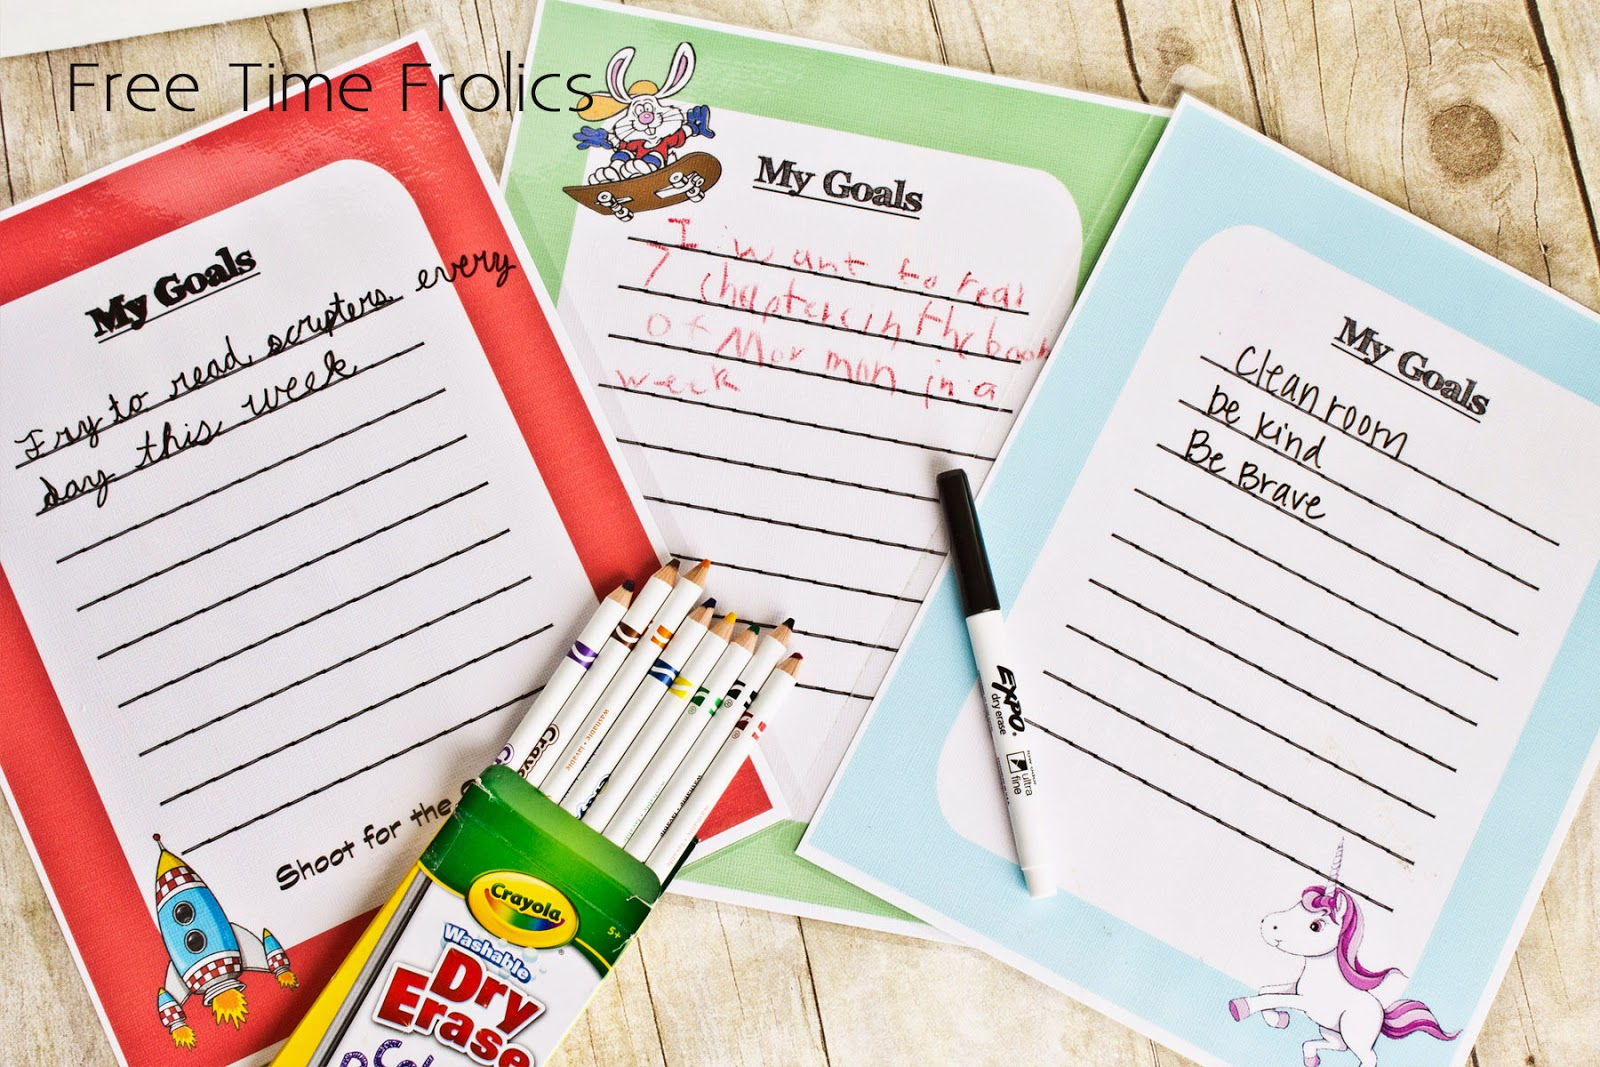 goal setting pages for kids Free Printable www.freetimefrolics.com